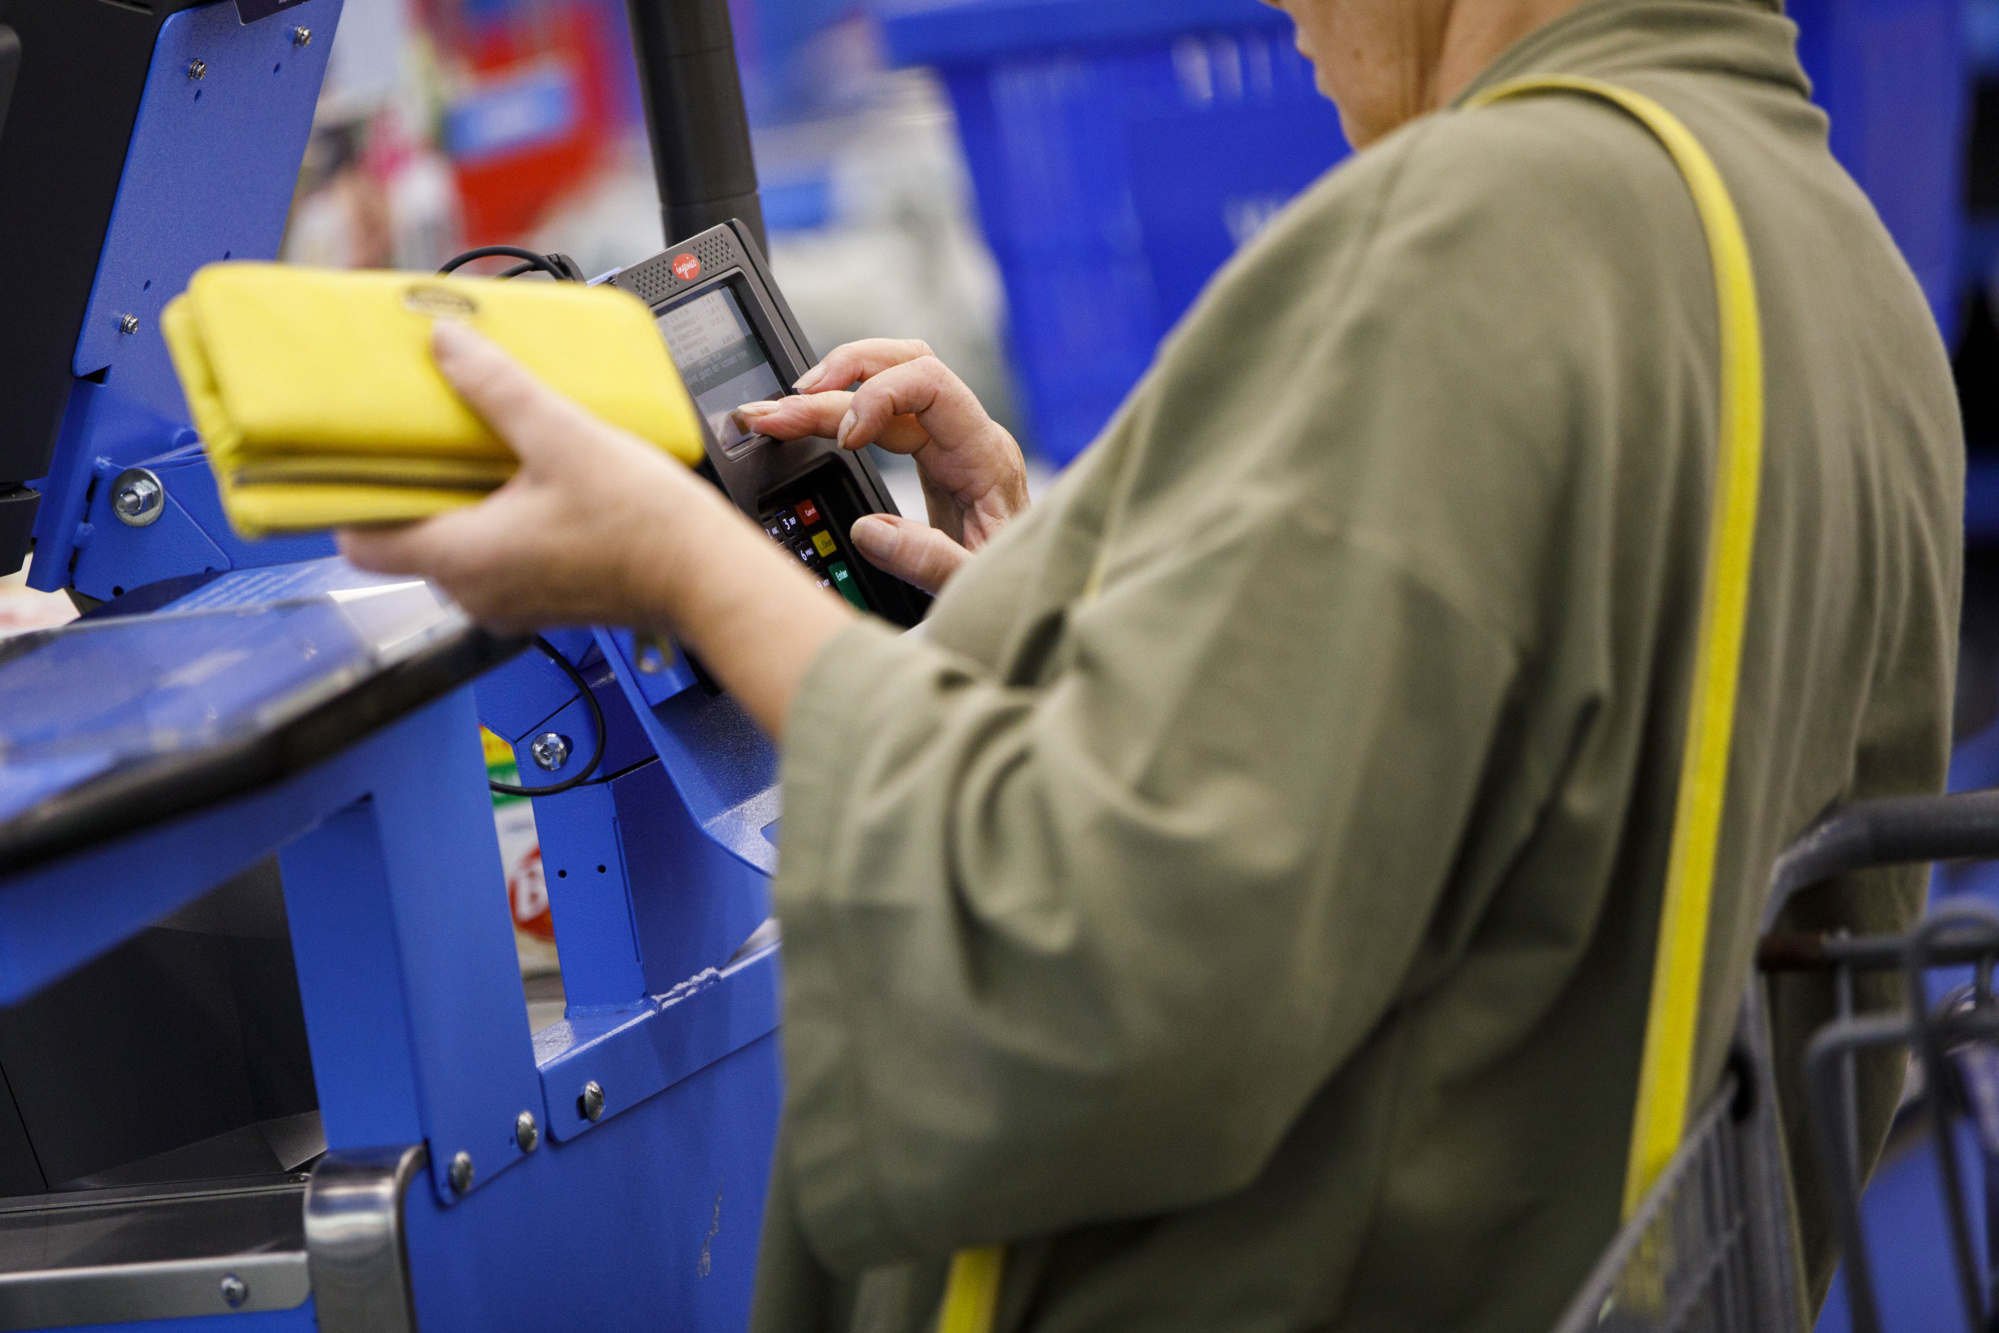 Walmart Weighs a Bid From Capital One for Credit Cards